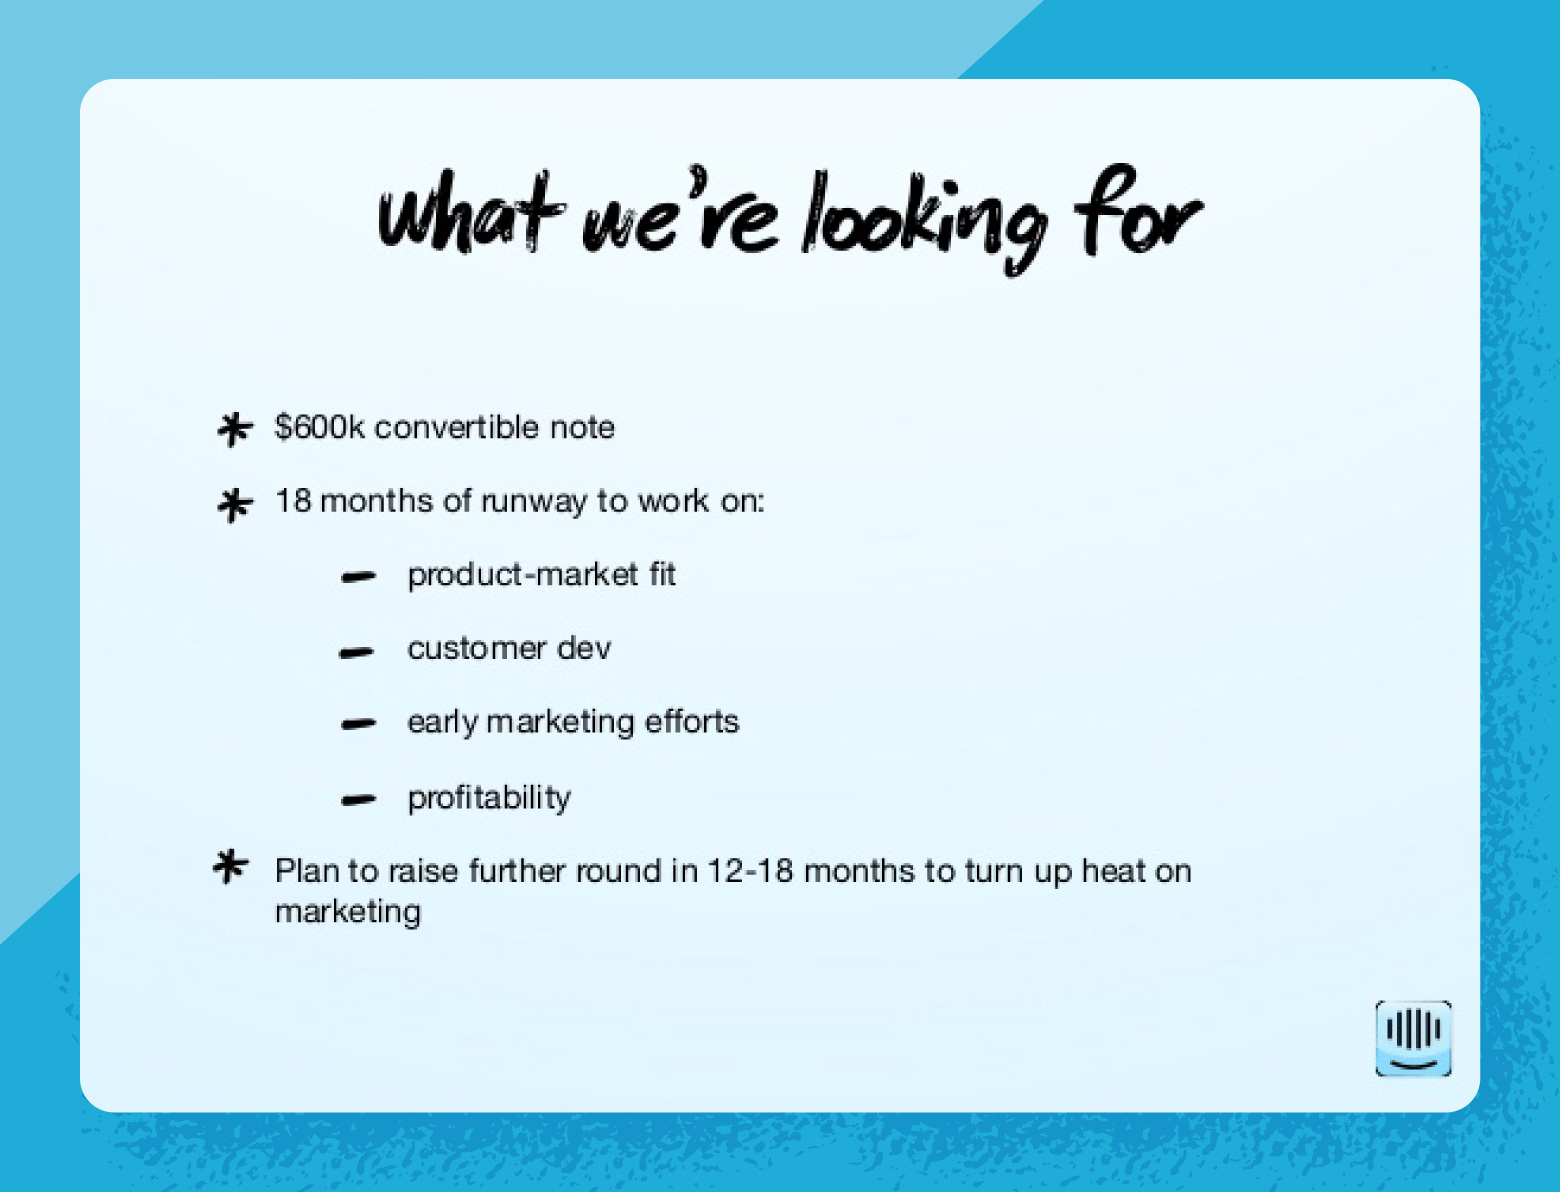 Pitch deck slide from intercom's 2011 deck outlining what they are looking for in an investor.